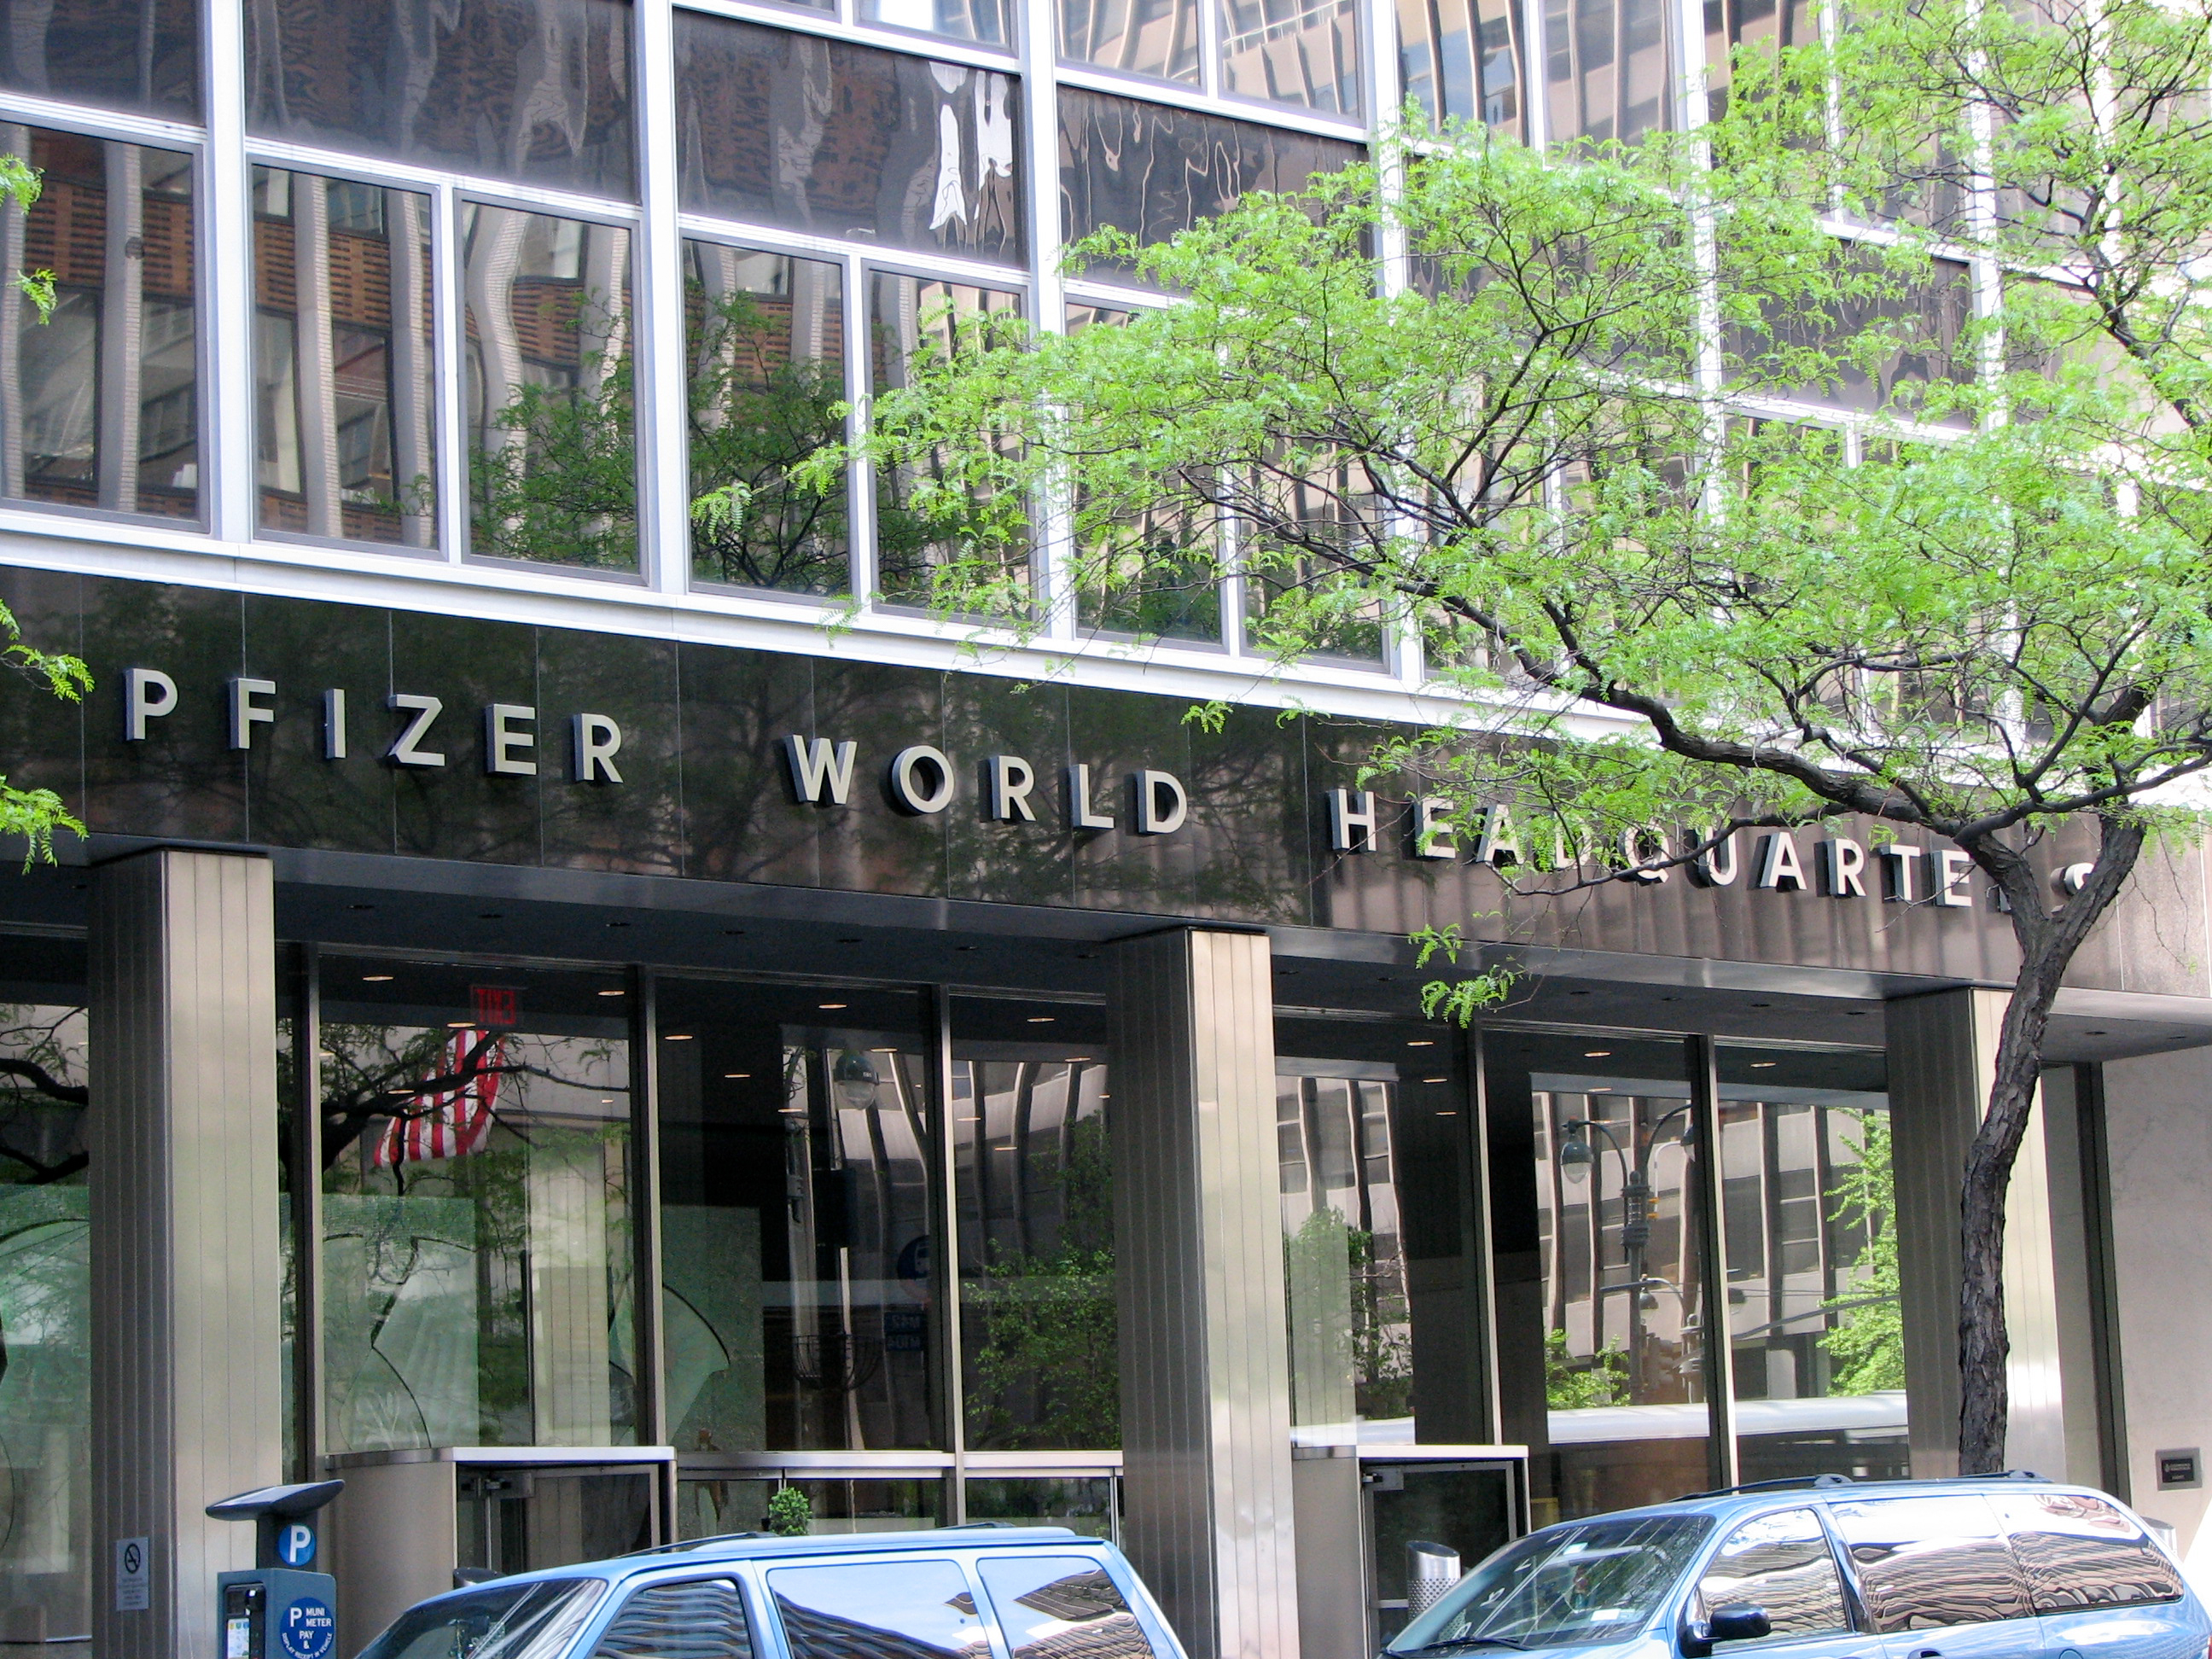 Pfizer S Hunt For New Manhattan Hq Lands On Snazzy Spiral Skyscraper Report Fiercepharma